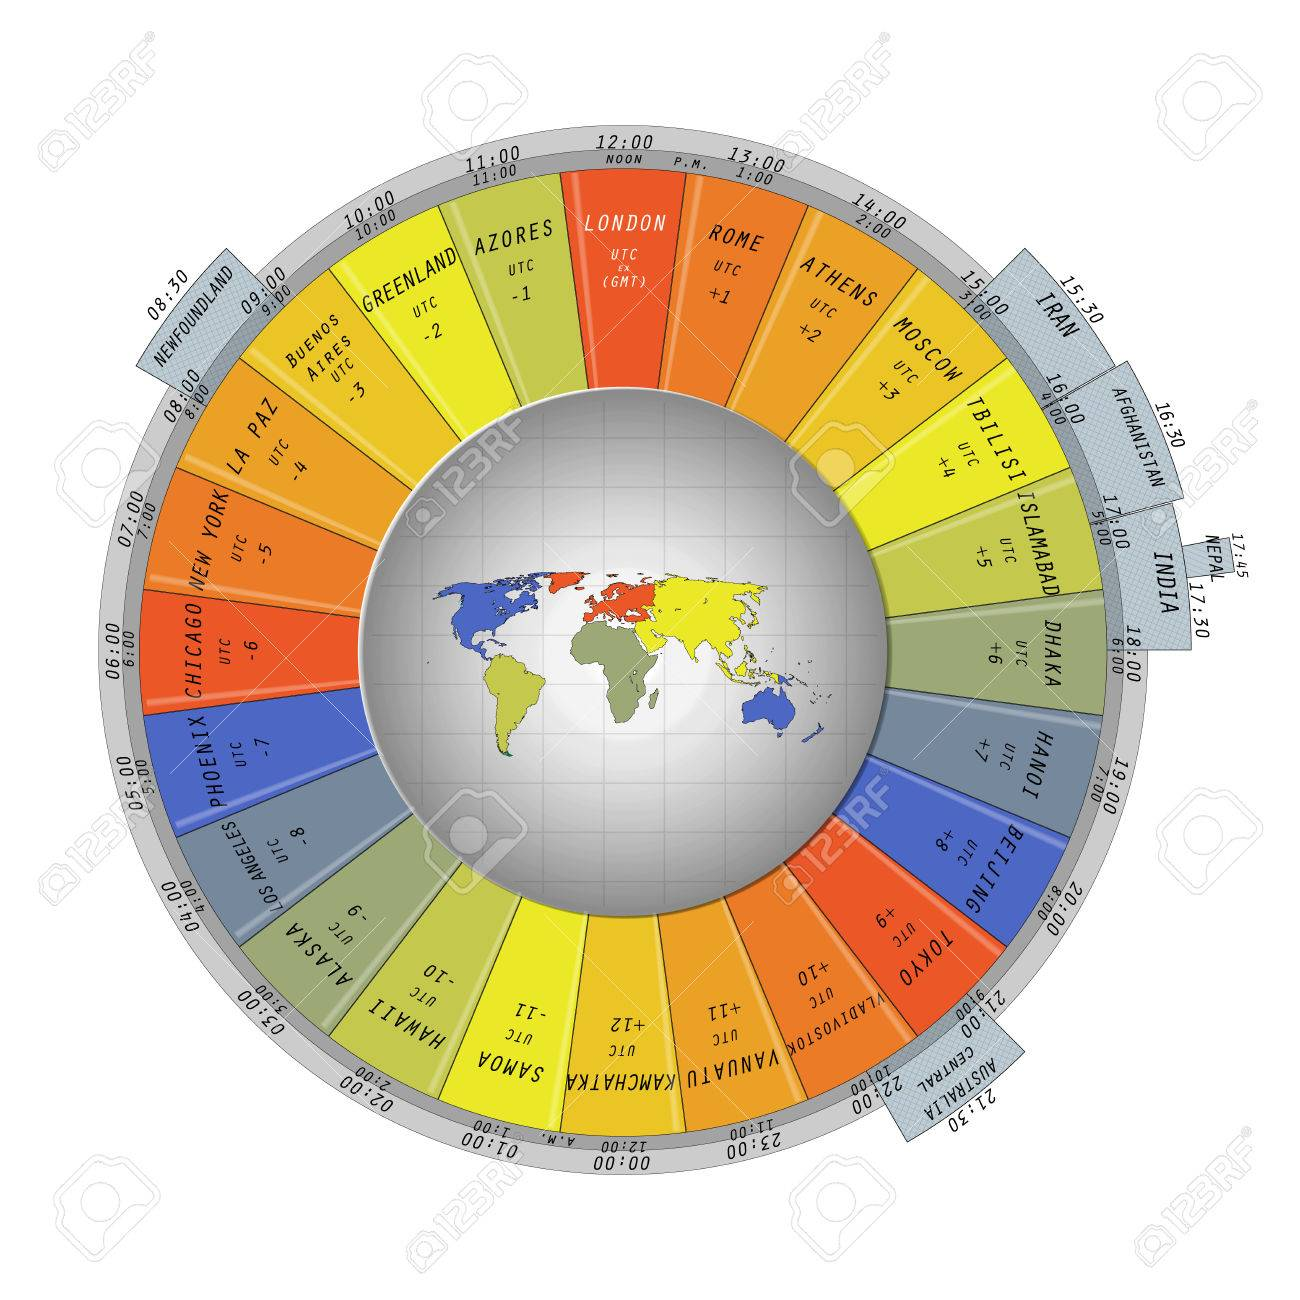 World map surrounded with colorful time zone tabs containing world map surrounded with colorful time zone tabs containing belonging cities or countries displaying time gumiabroncs Choice Image